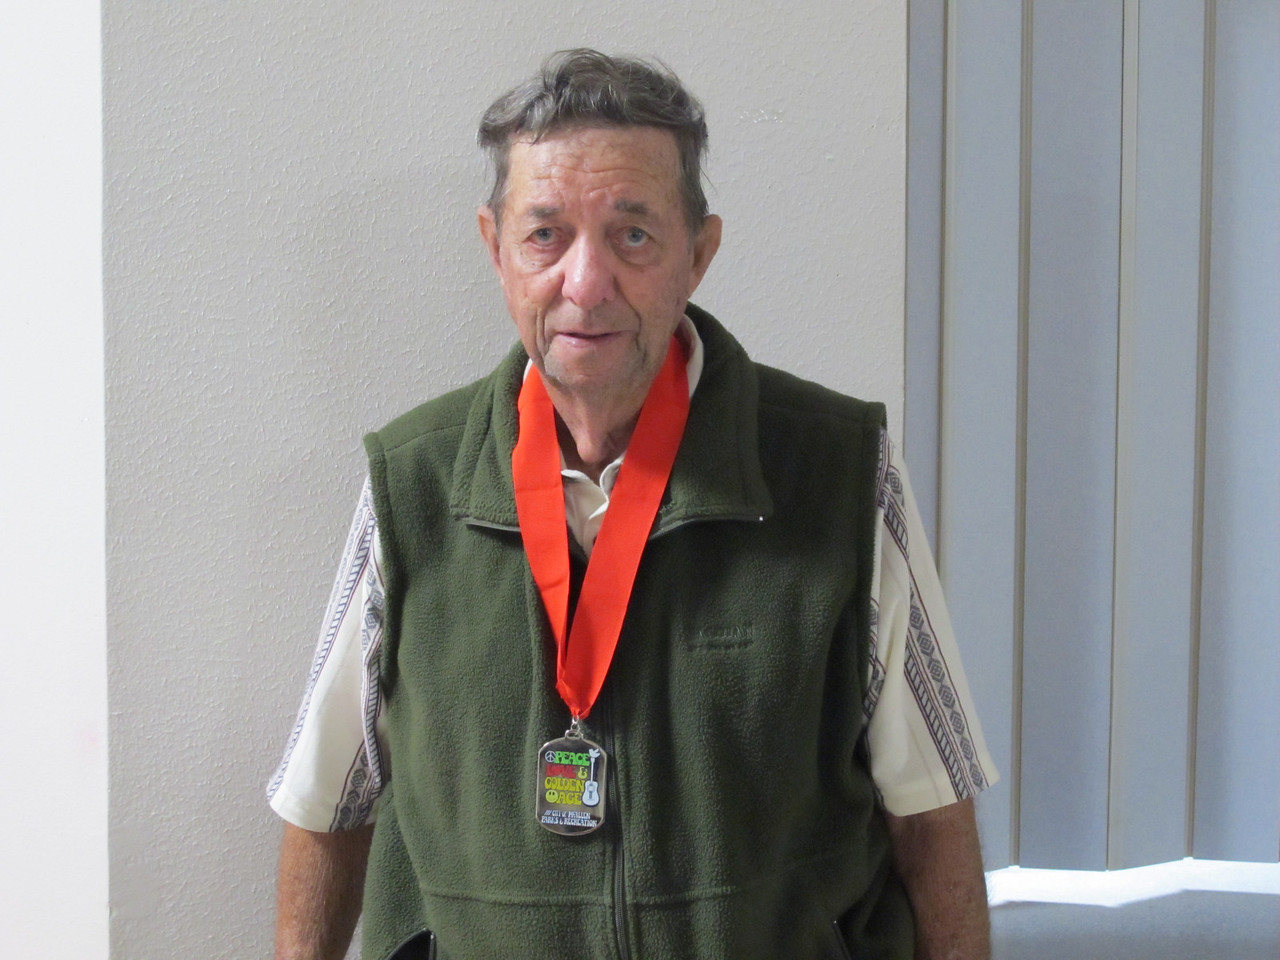 Washers Men 2nd Place - Tony Comstock (Tropic Star)